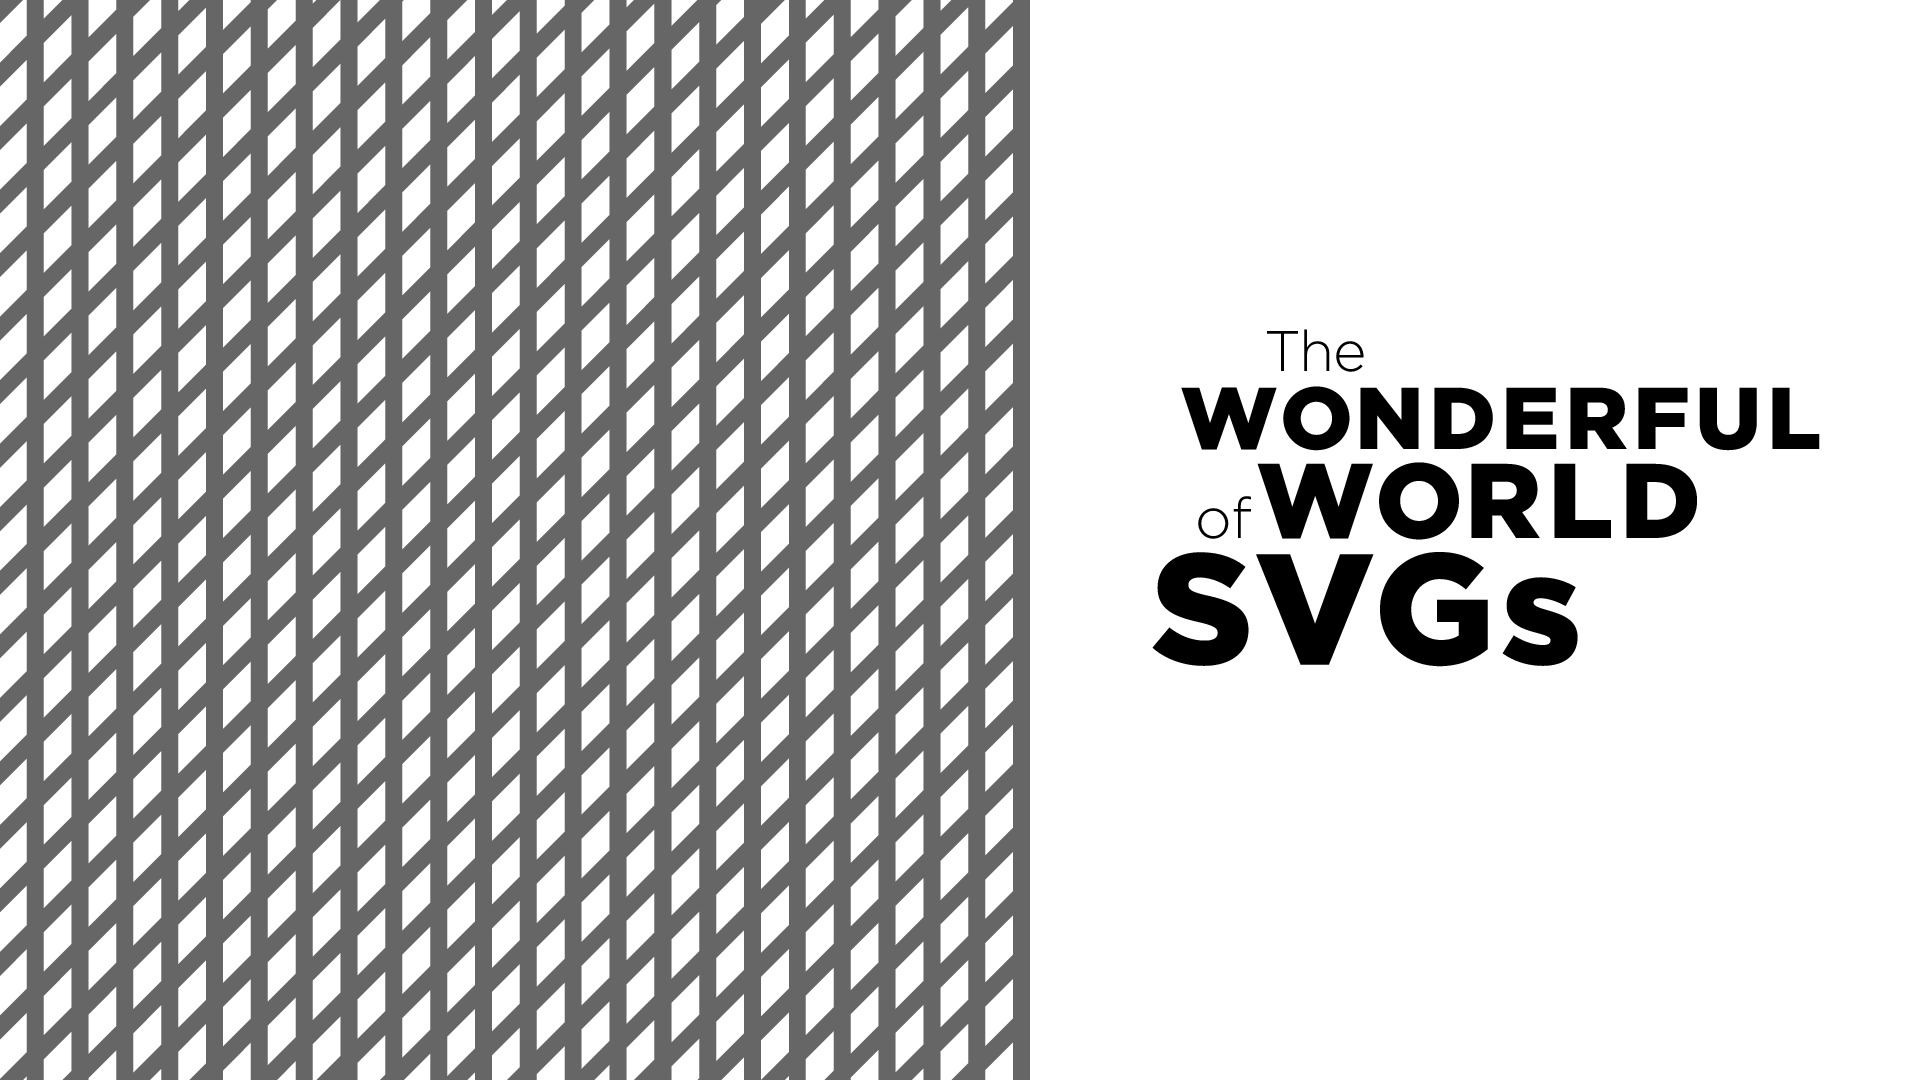 The Wonderful World of SVGs